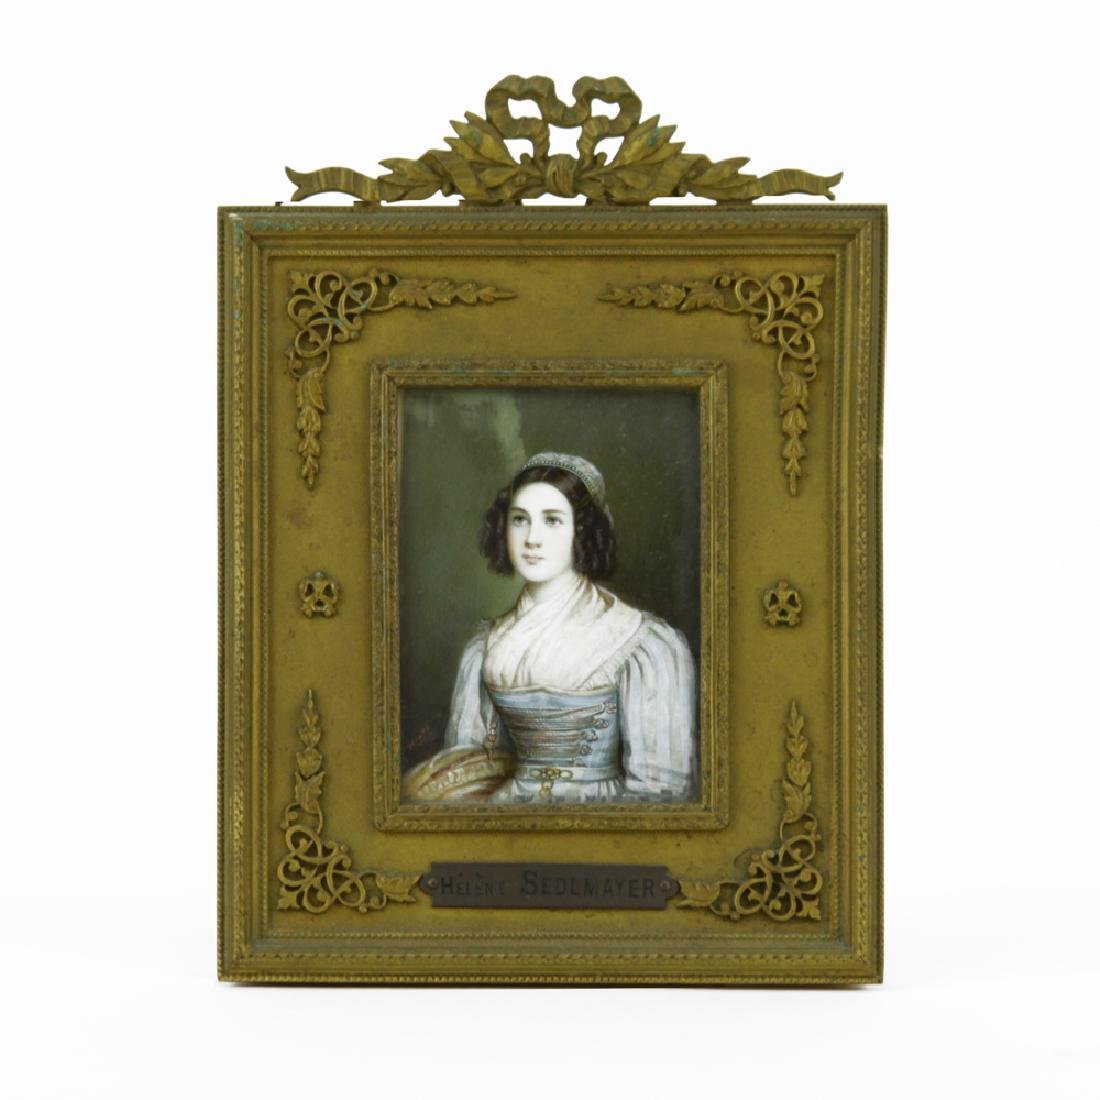 19th C Hand Painted Portrait Miniature of Helene Sedlma